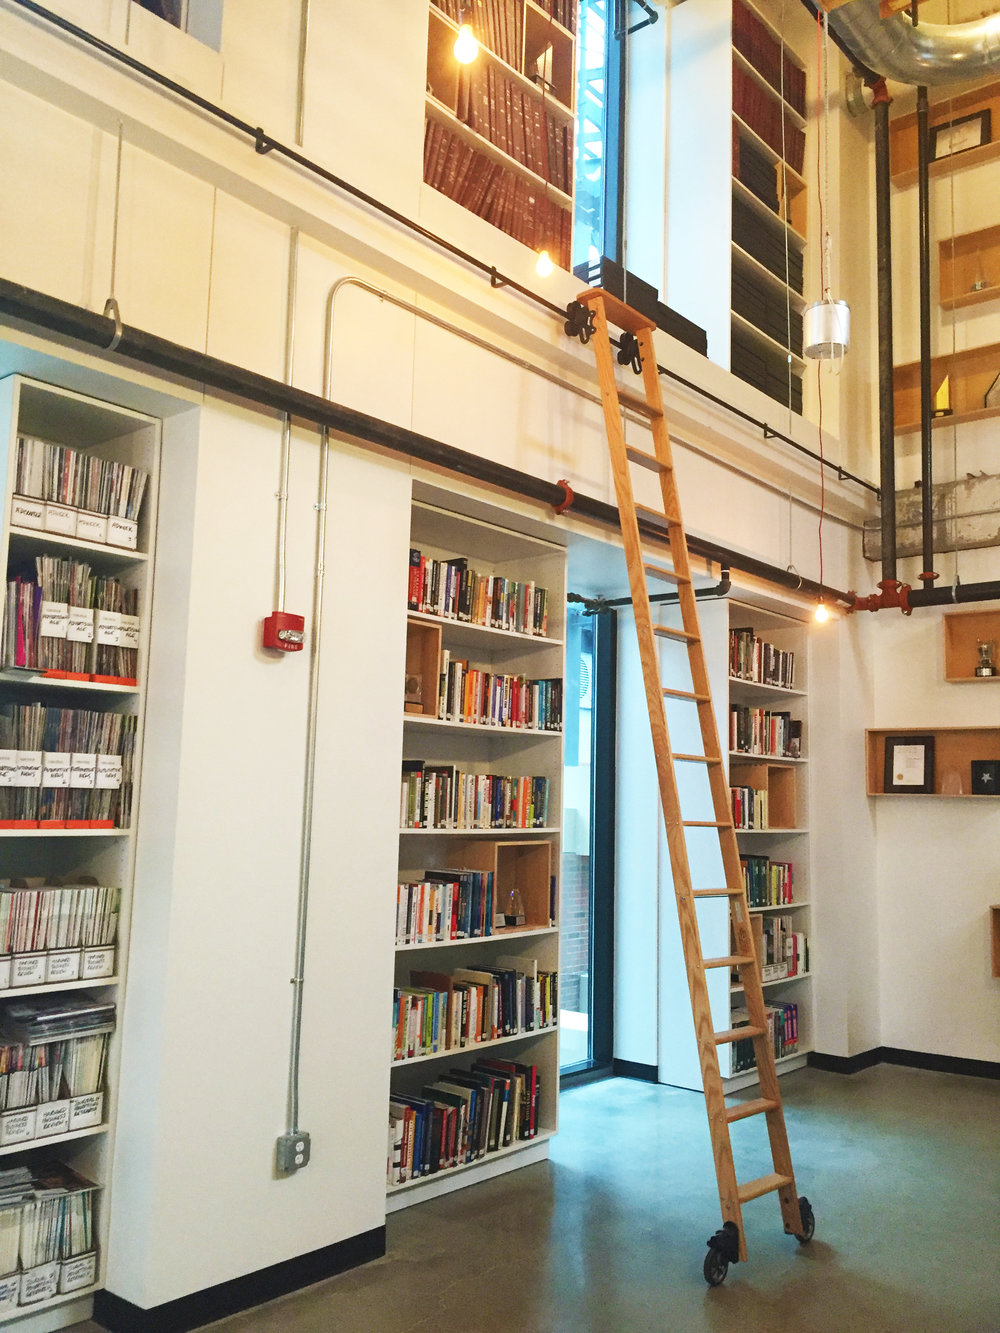 The interiors of the Campbell Ewald headquarters were very industrial, which made it really feel like it fit into the urban landscape of Detroit. This is their library.